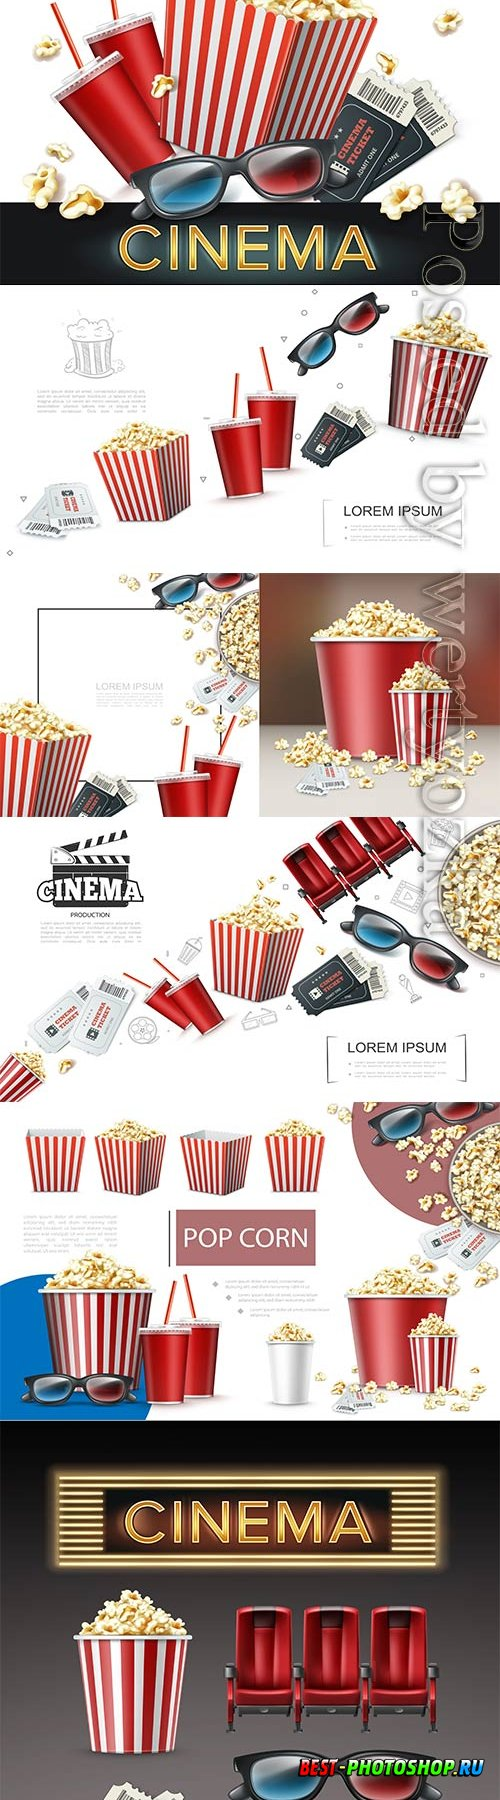 Realistic cinema elements, 3d glasses, tickets, soda, cups striped, paper box and bucket of popcorn